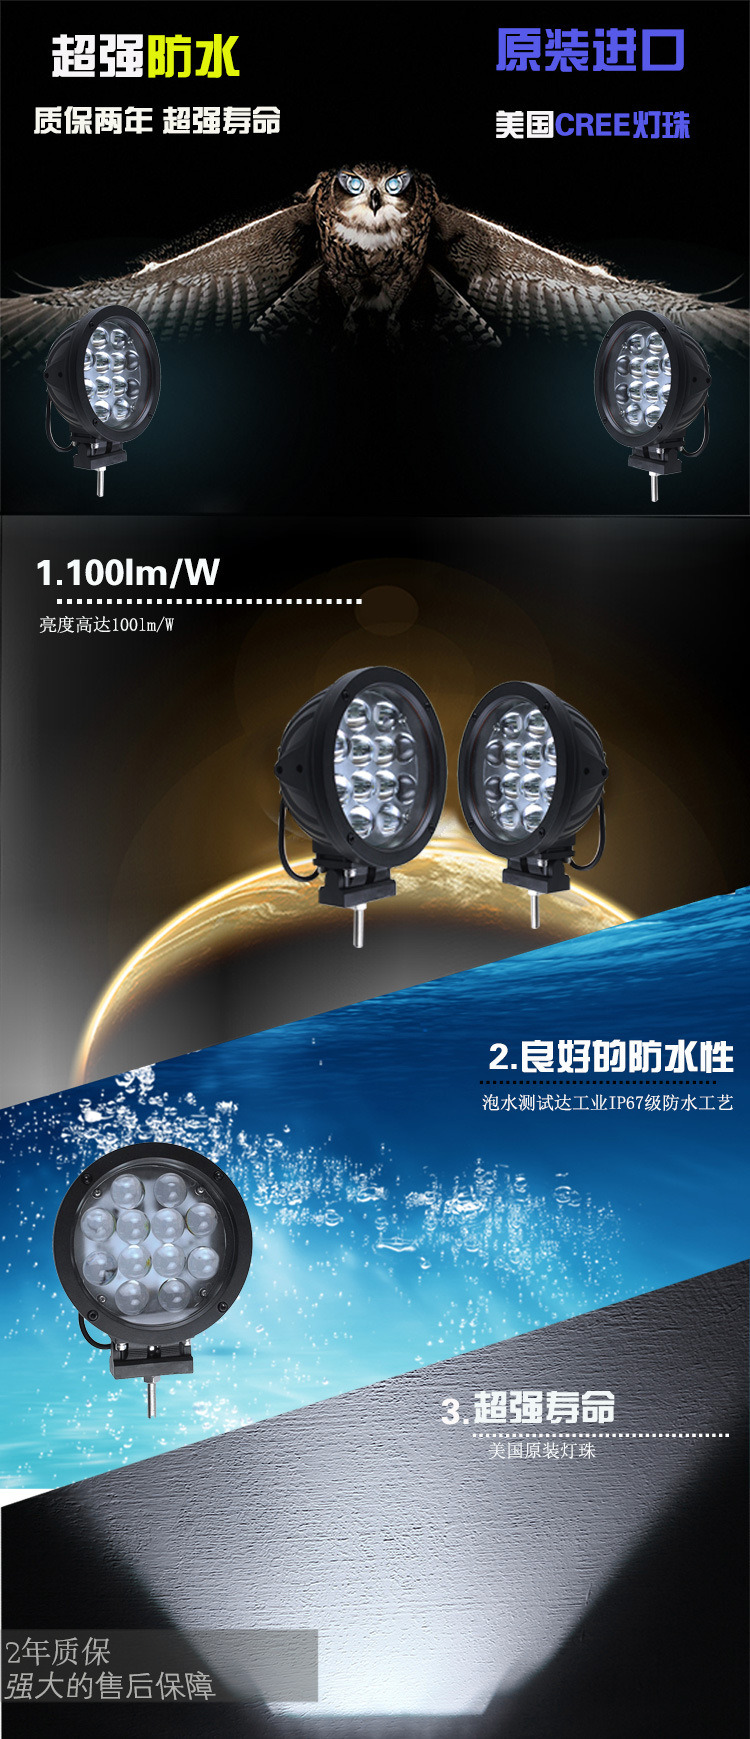 Auto LED Work Light 60W for Vehicles Trucks Working Light IP69K Waterproof